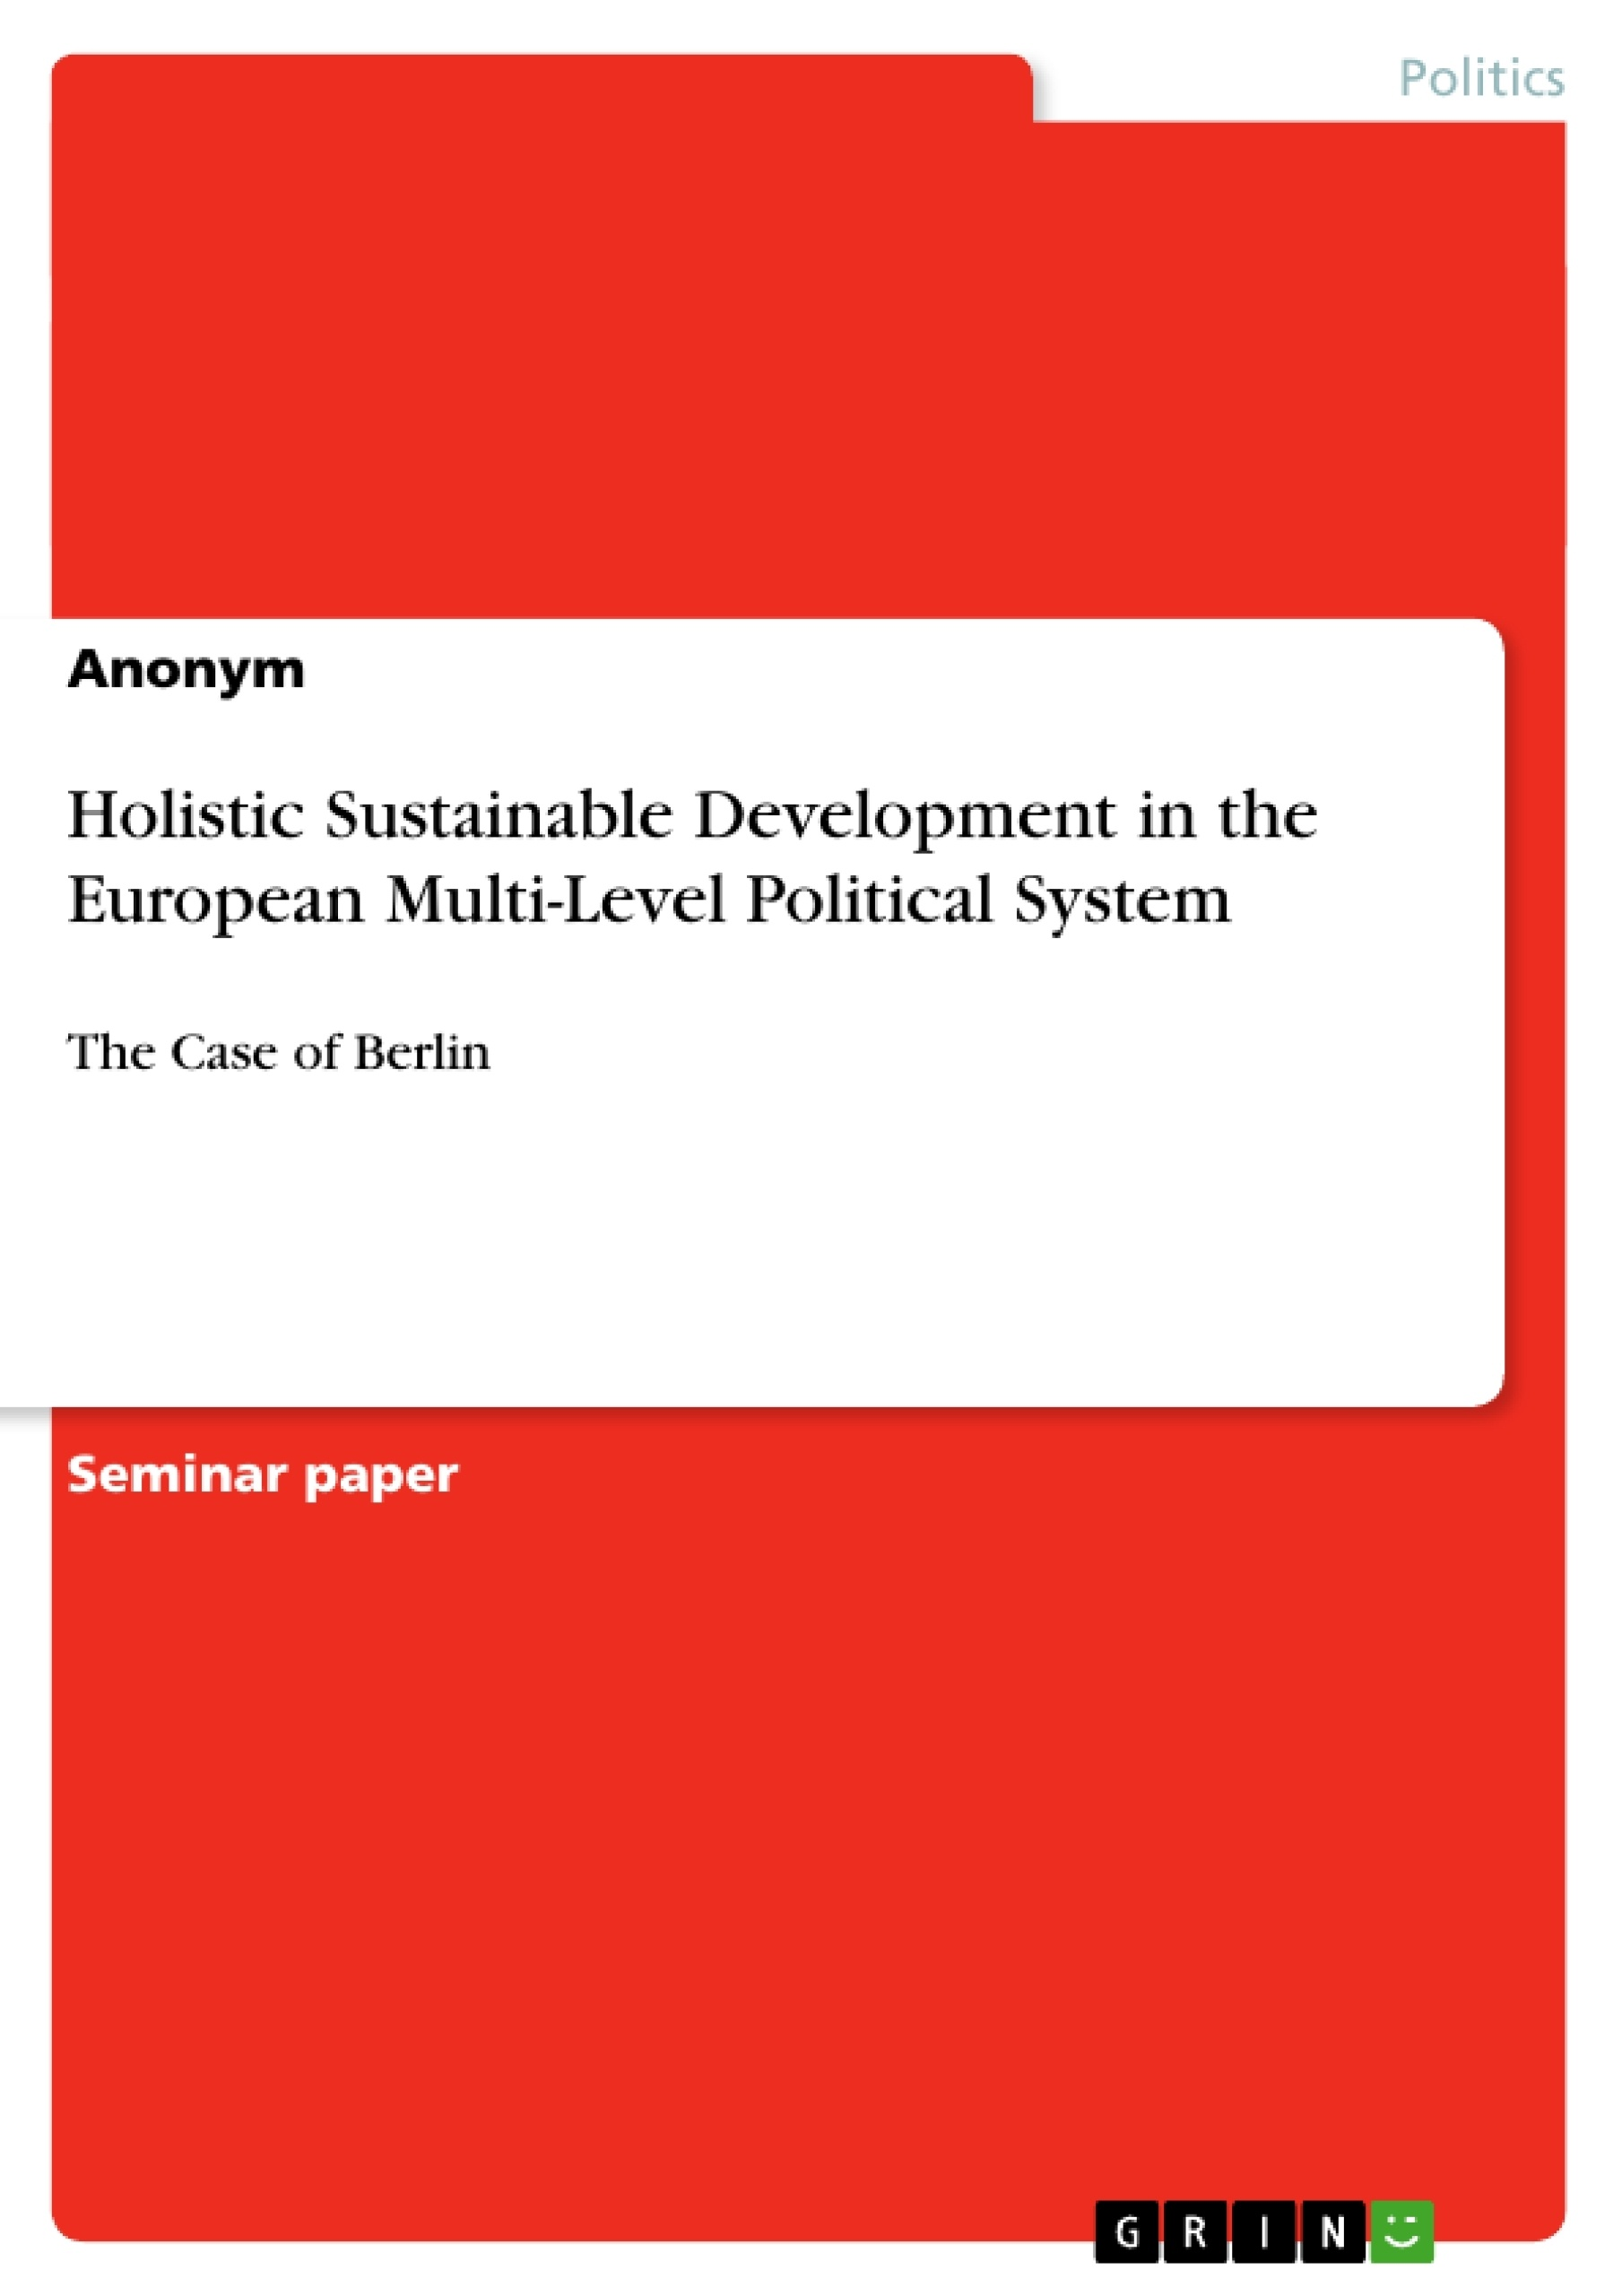 Title: Holistic Sustainable Development in the European Multi-Level Political System